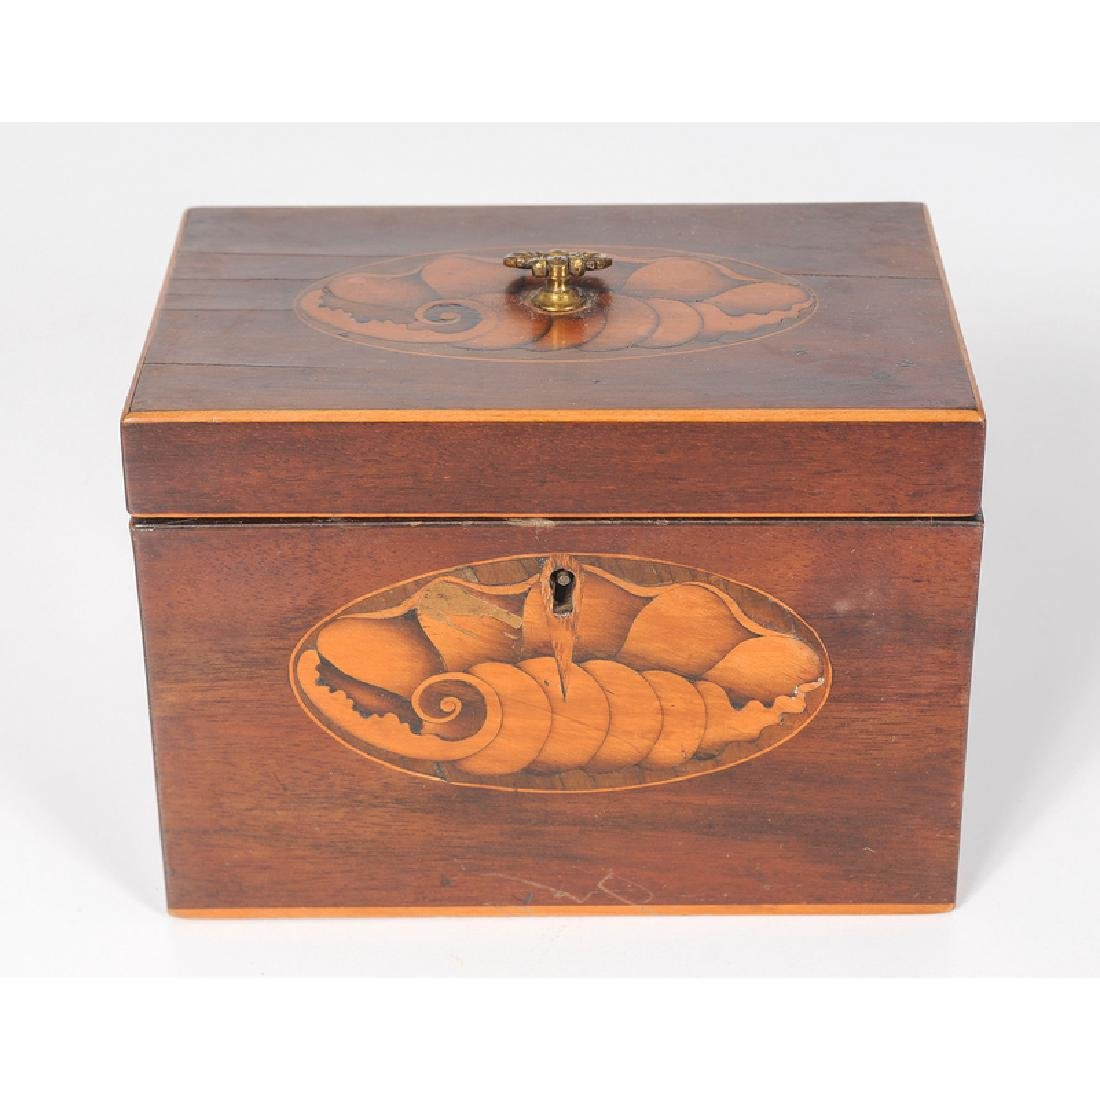 Tea Caddy with Inlaid Conch Shell Decoration - 2